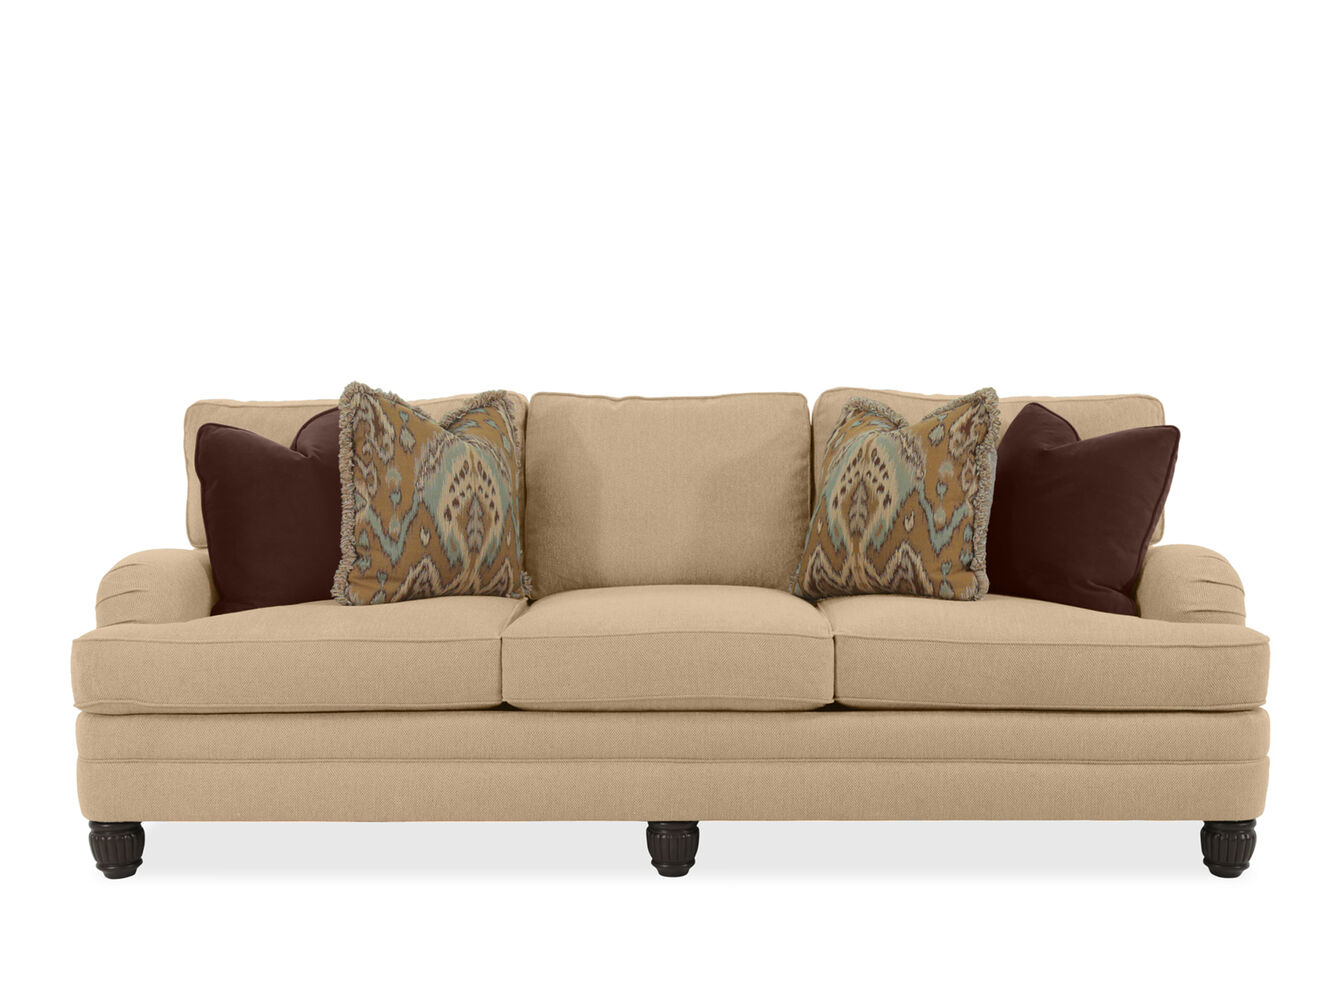 Casual 96 5 textured sofa in beige mathis brothers for Casual couch